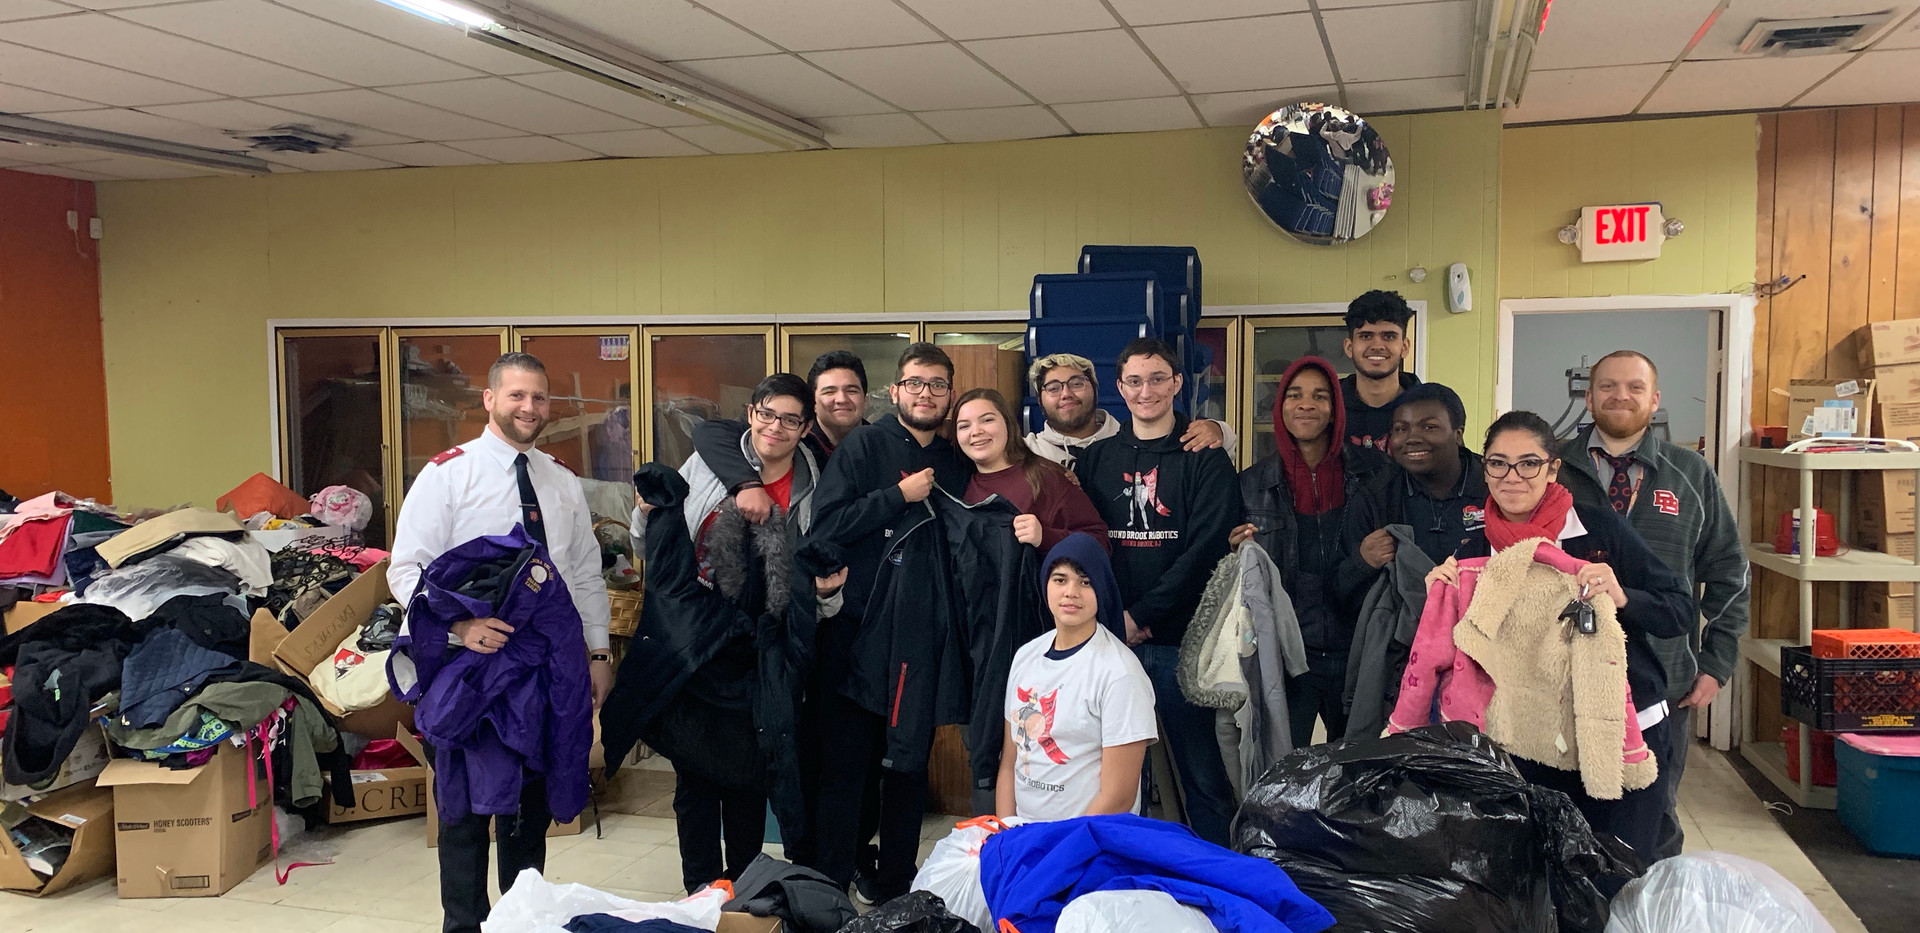 Salvations Army Coat Drive #1.jpg